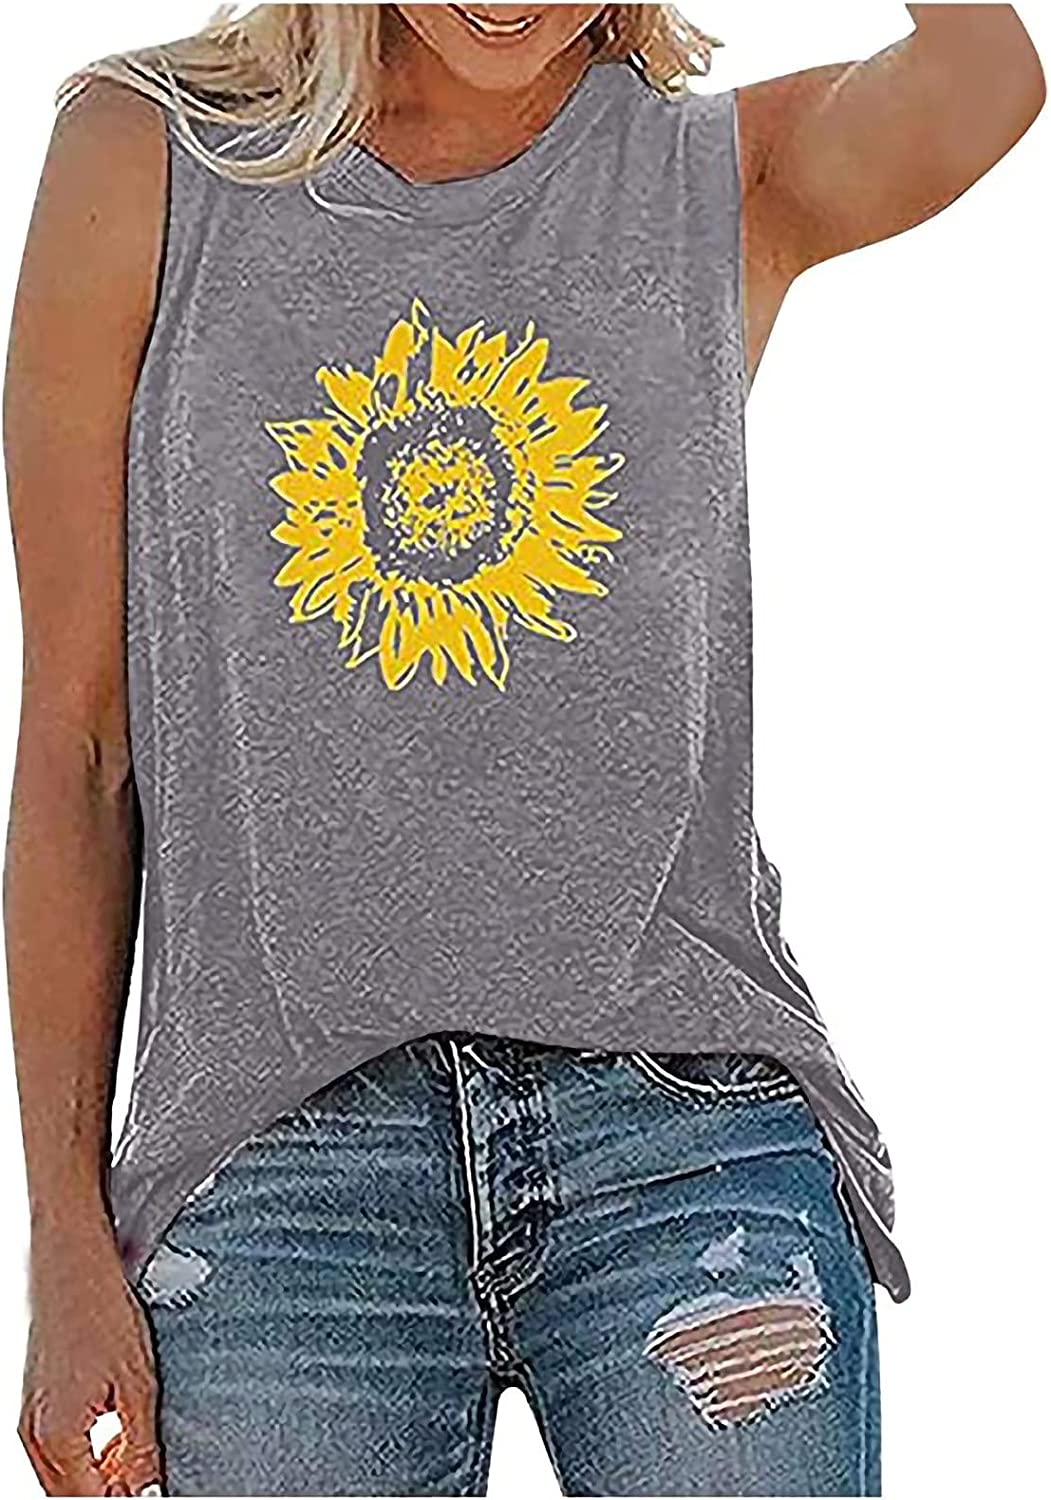 BUGI Womens Tank Tops Casual Loose Fit Plus Size Sunflower Printed Tee Shirts Sleeveless Tees for Women Casual Summer